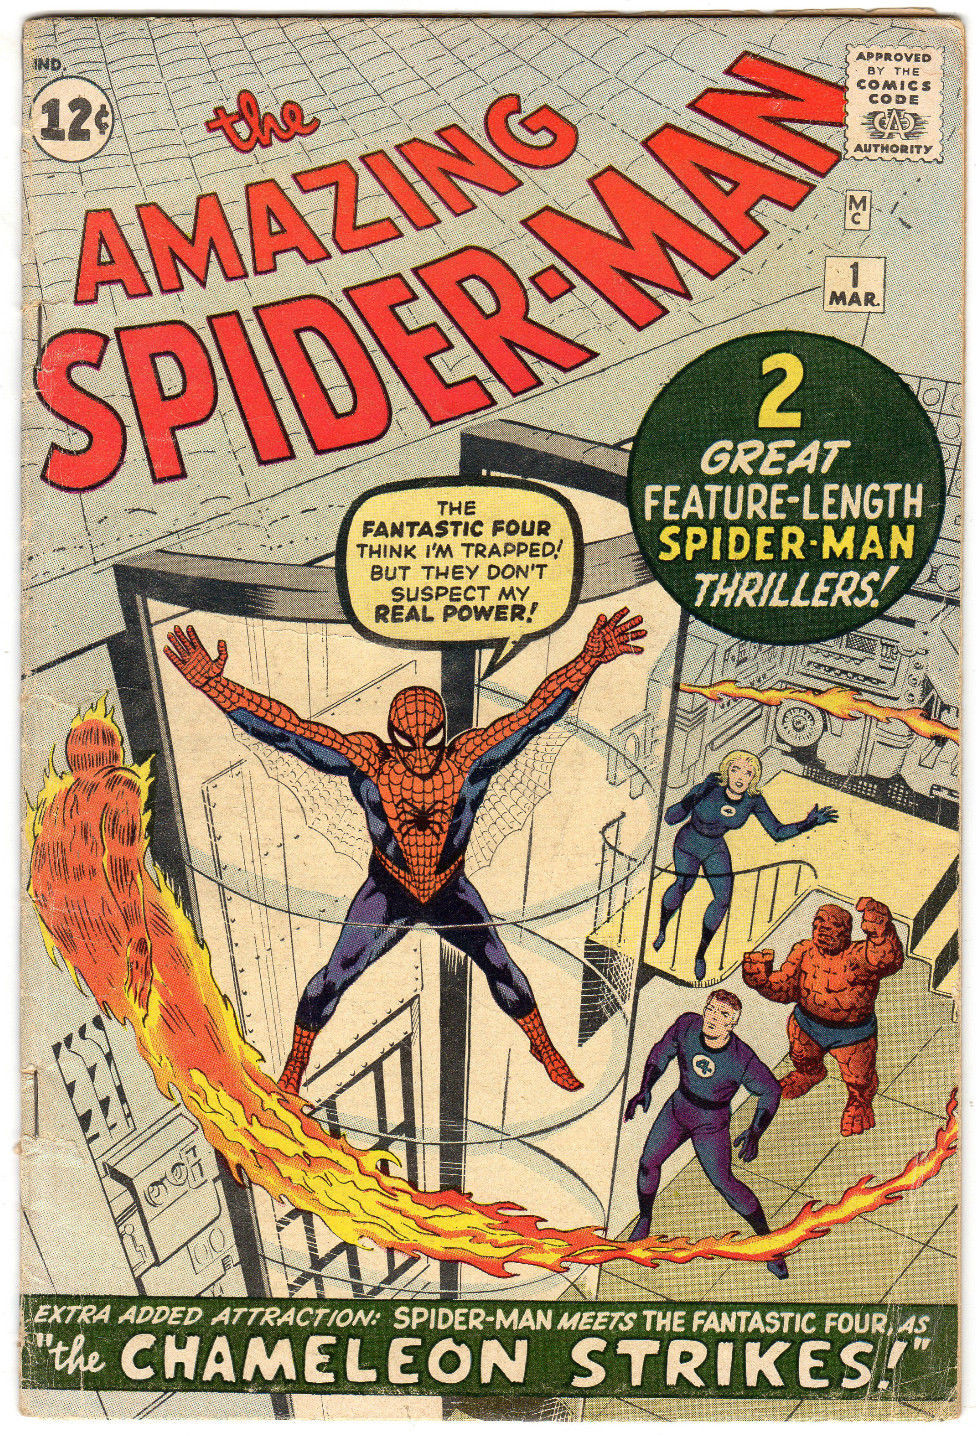 Book Cover Art Cost : The amazing spider man comic book values comics watcher